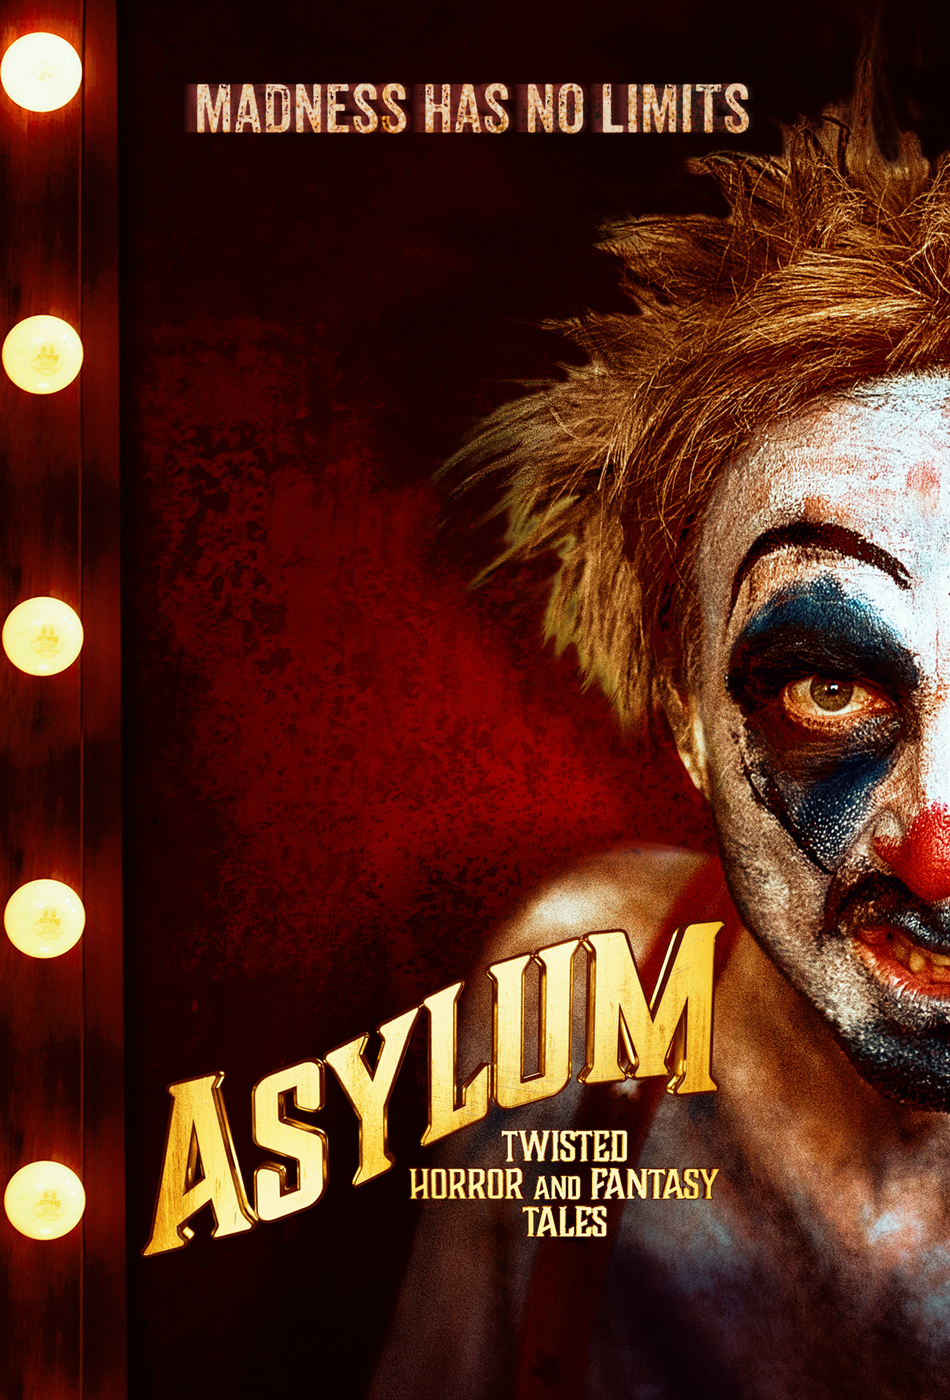 Asylum Twisted Horror And Fantasy Tales 2020 English 720p HDRip 1.3GB | 350MB Download